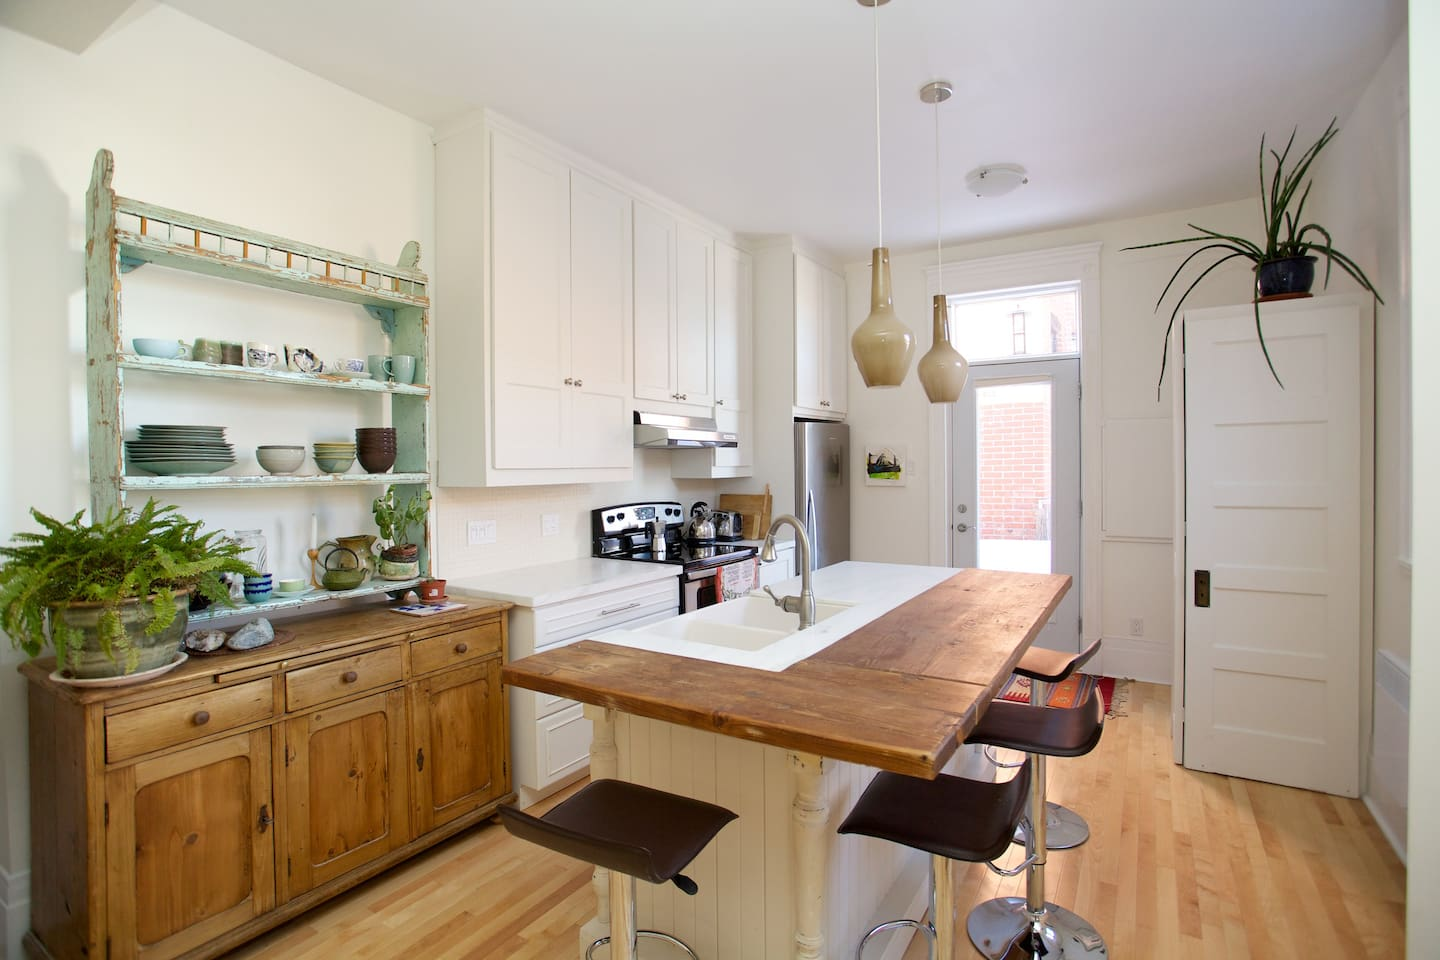 Bright and beautiful newly renovated kitchen with new electrical appliances